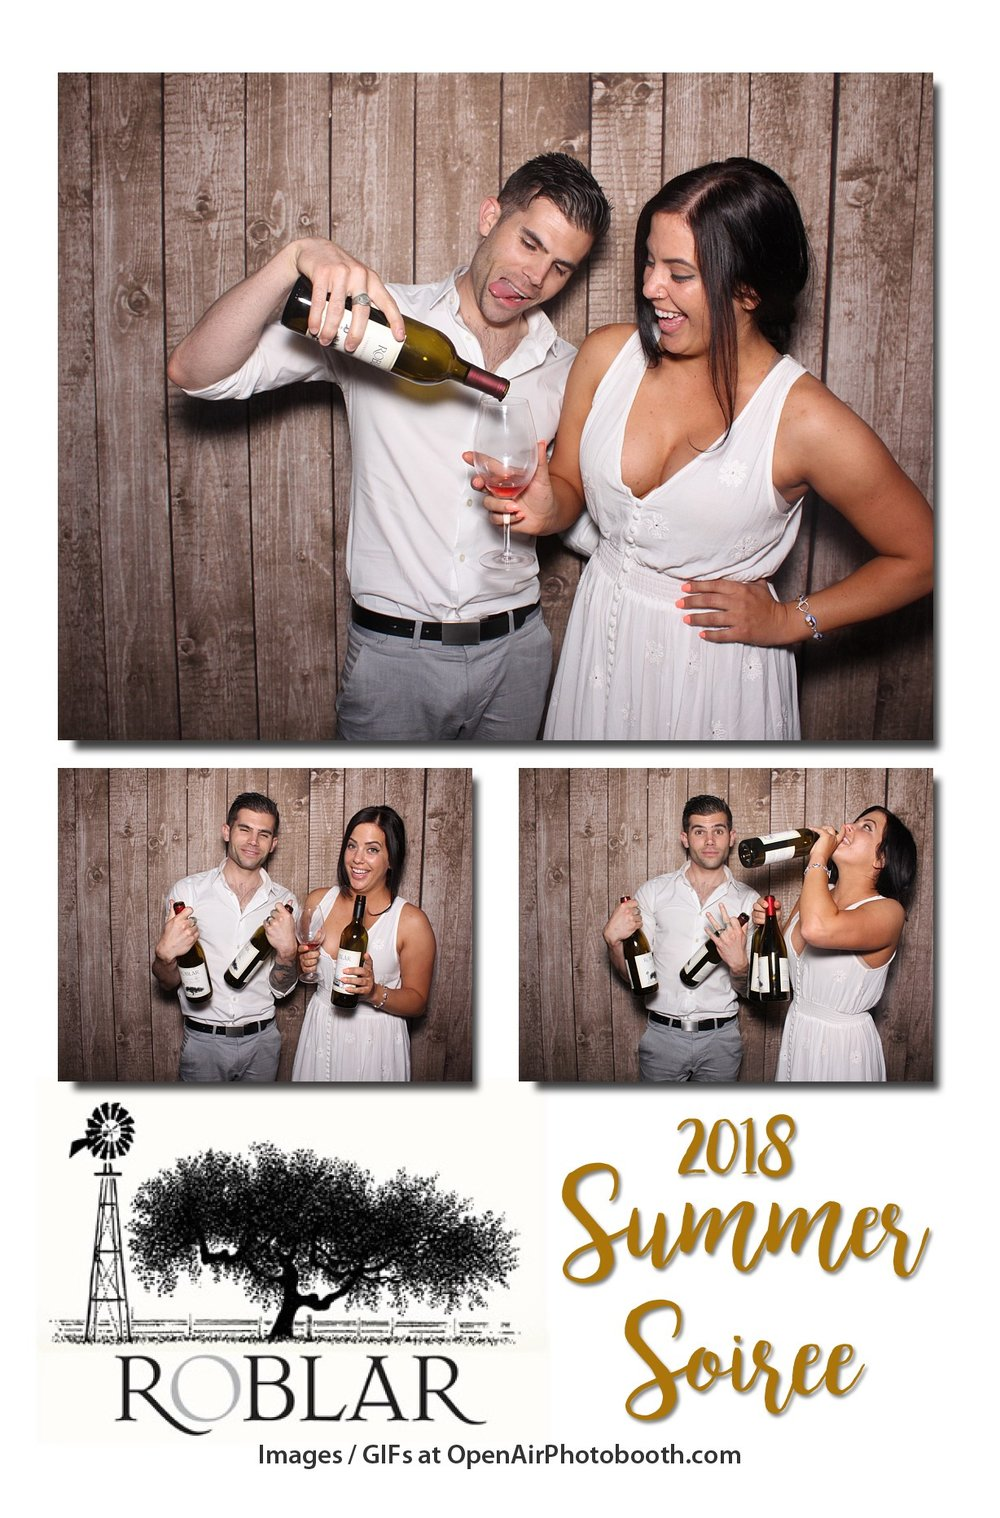 roblar winery photobooth